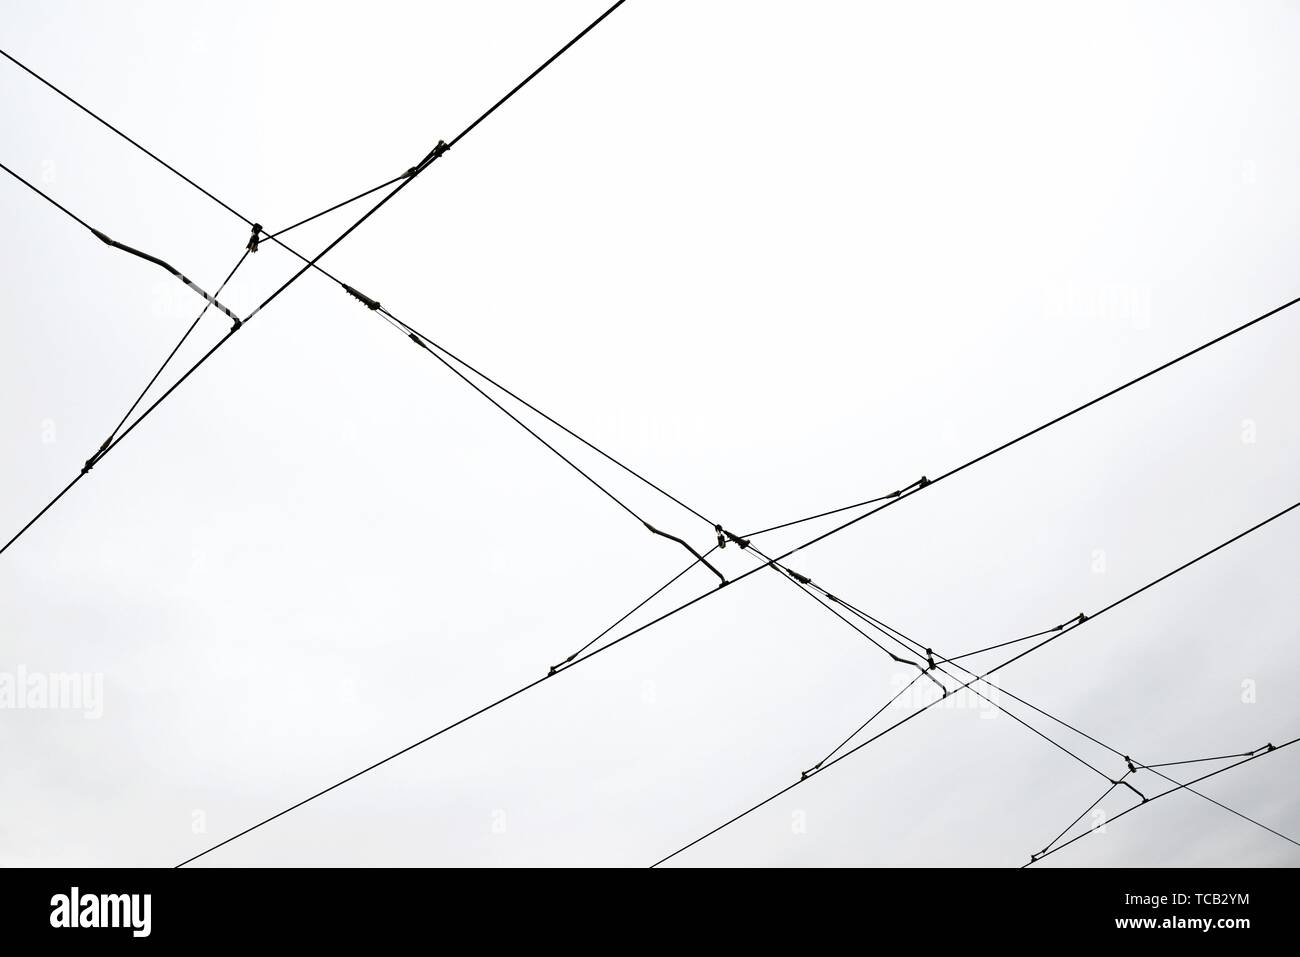 Detail of a catenary and stormy sky. Stock Photo